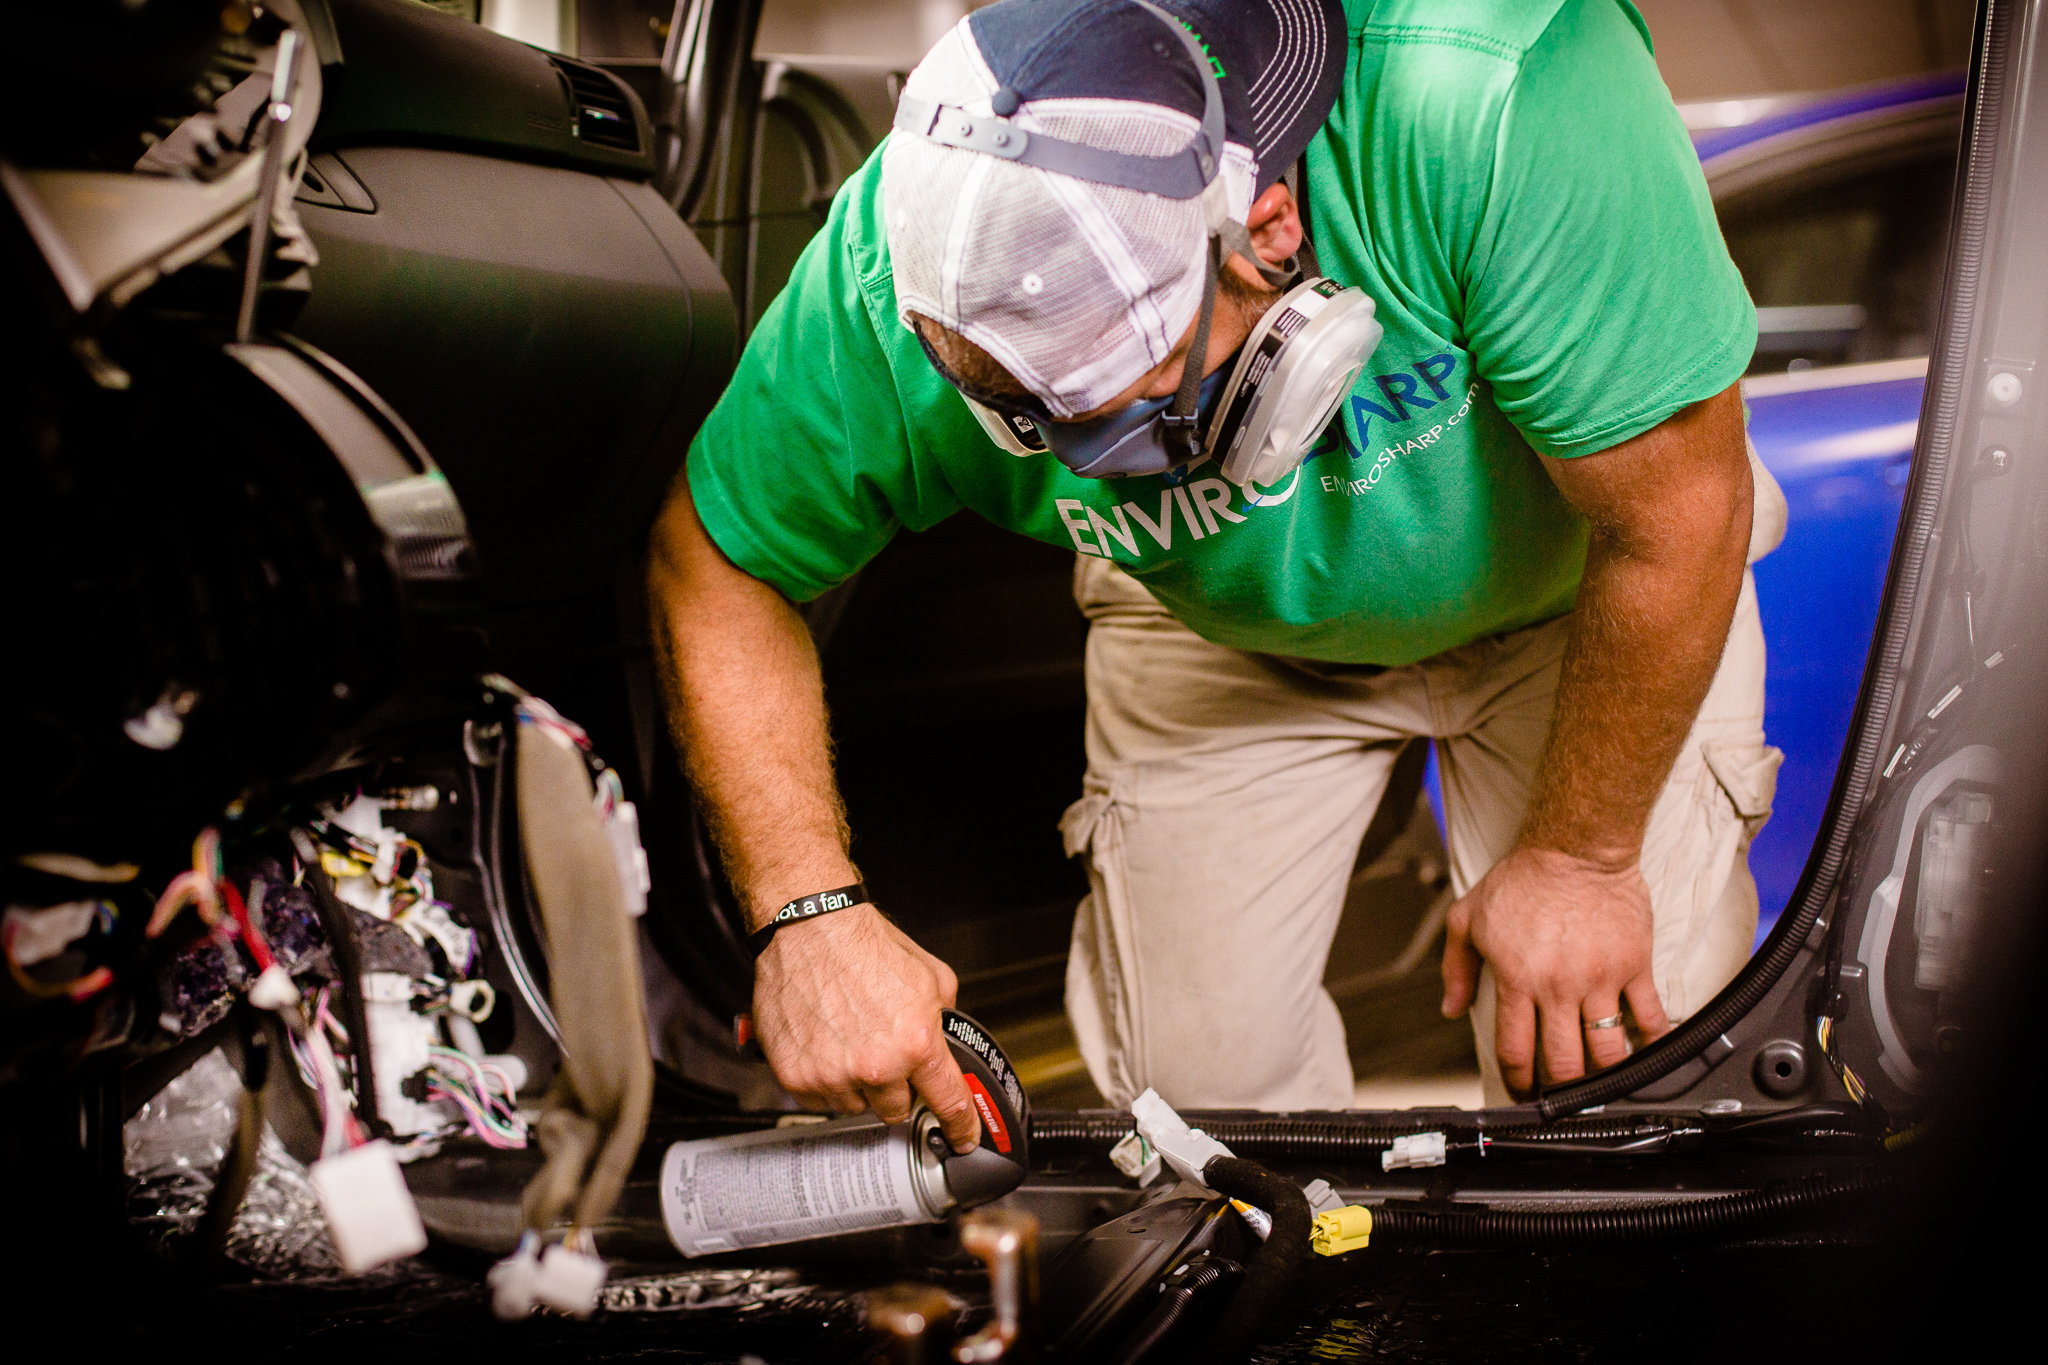 Have an auto leak creating mold?